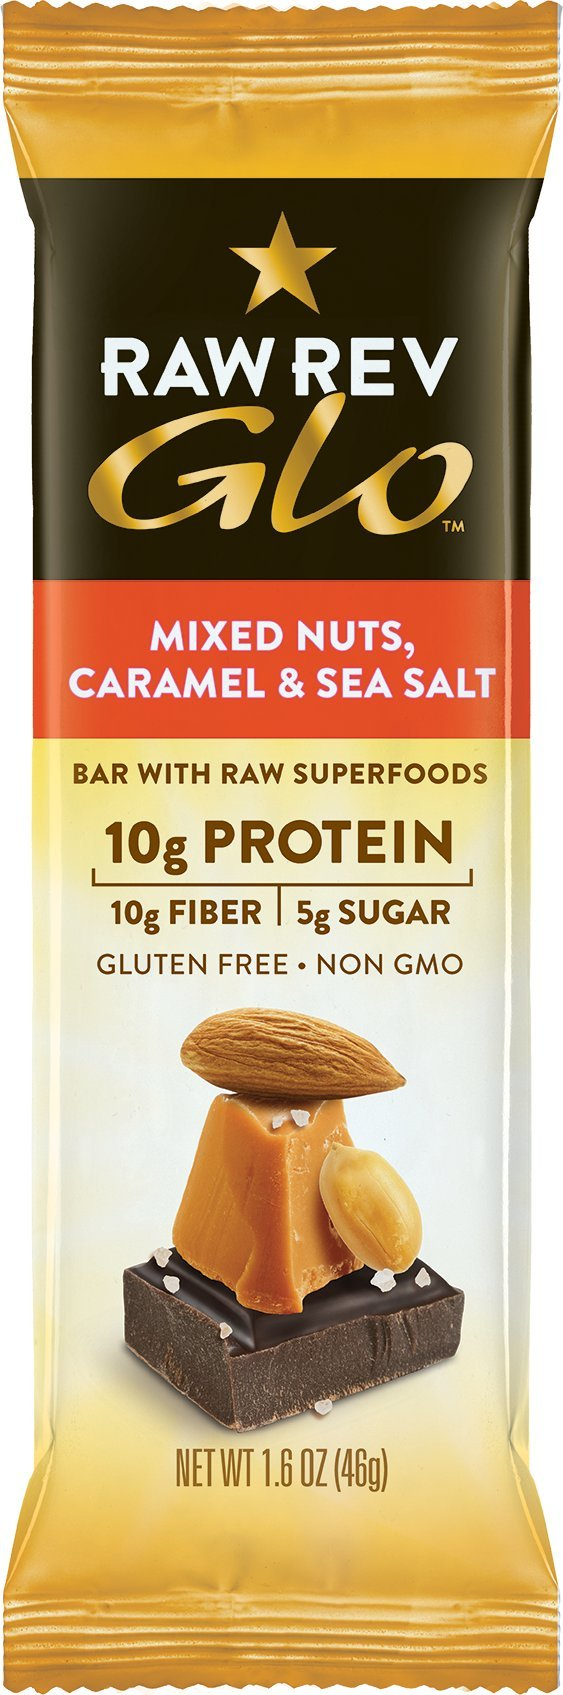 Raw Rev Glo Vegan, Gluten-Free Protein Bars - Mixed Nuts Caramel & Sea Salt 1.6 ounce (Pack of 12)